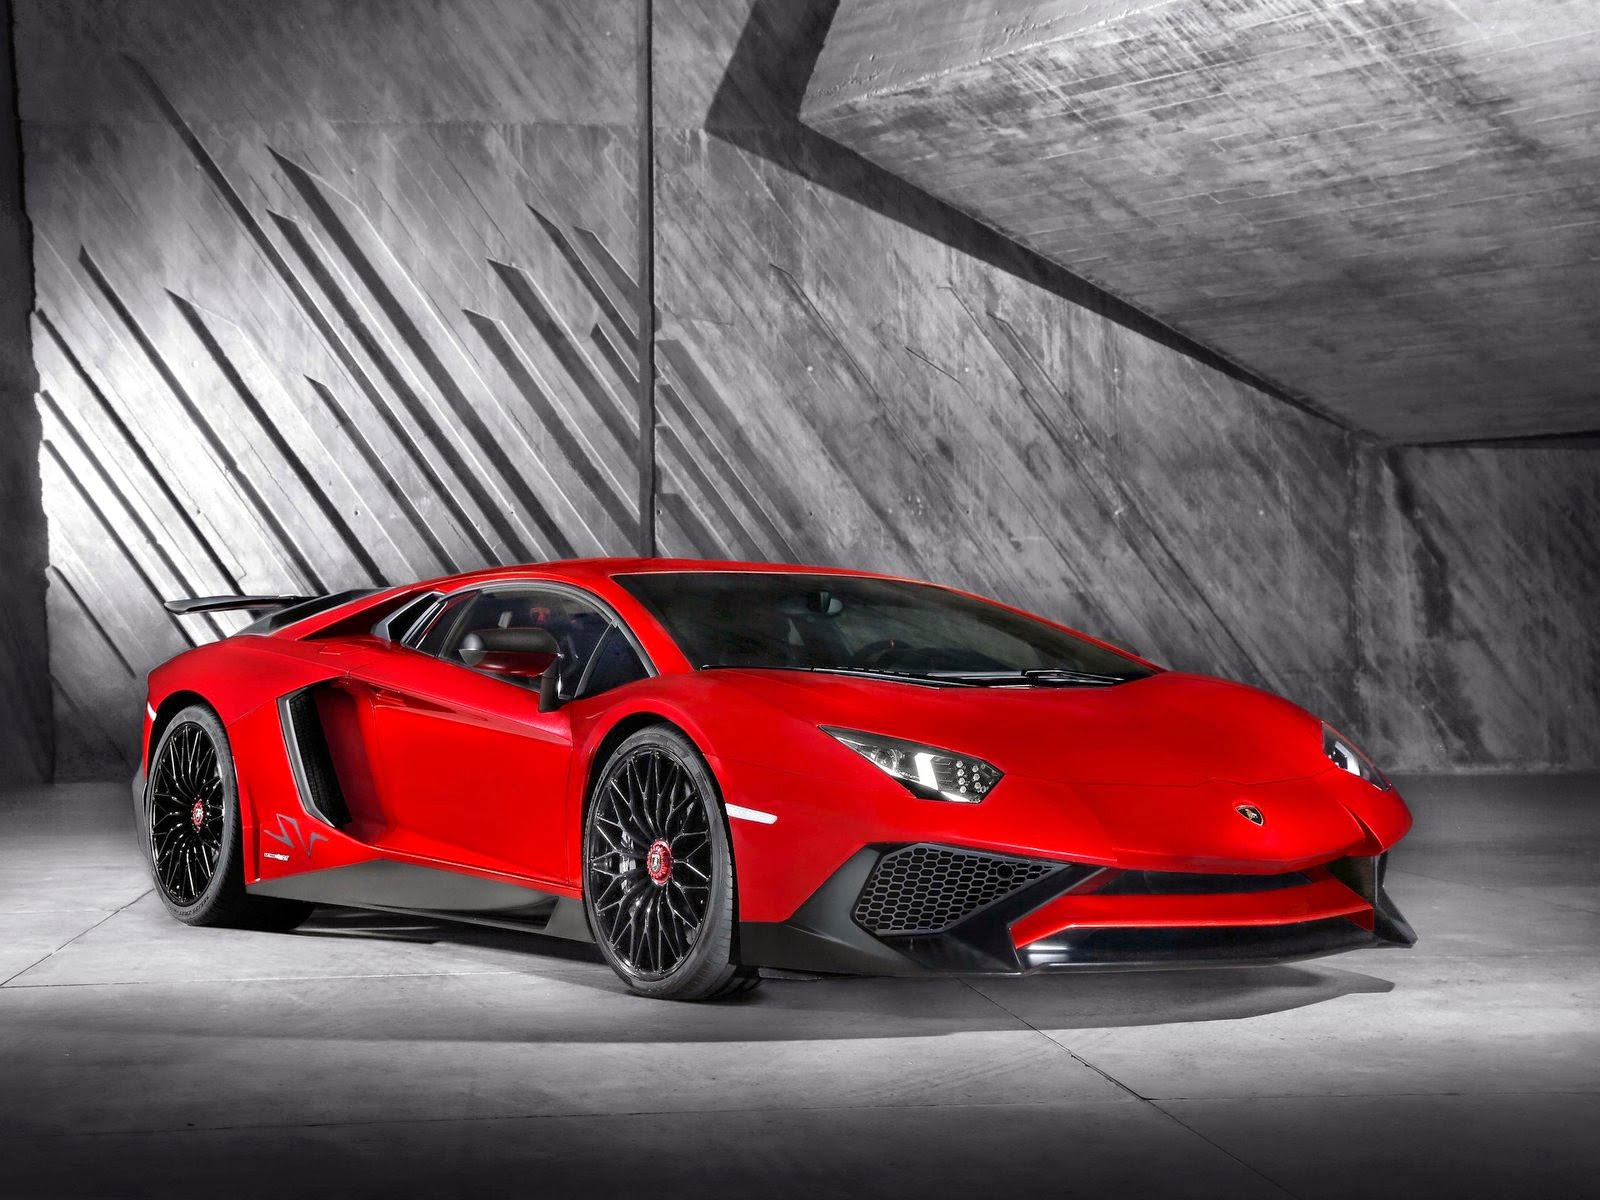 Lamborghini Aventador LP750 4 SV Wallpapers 藍寶堅尼�車桌布